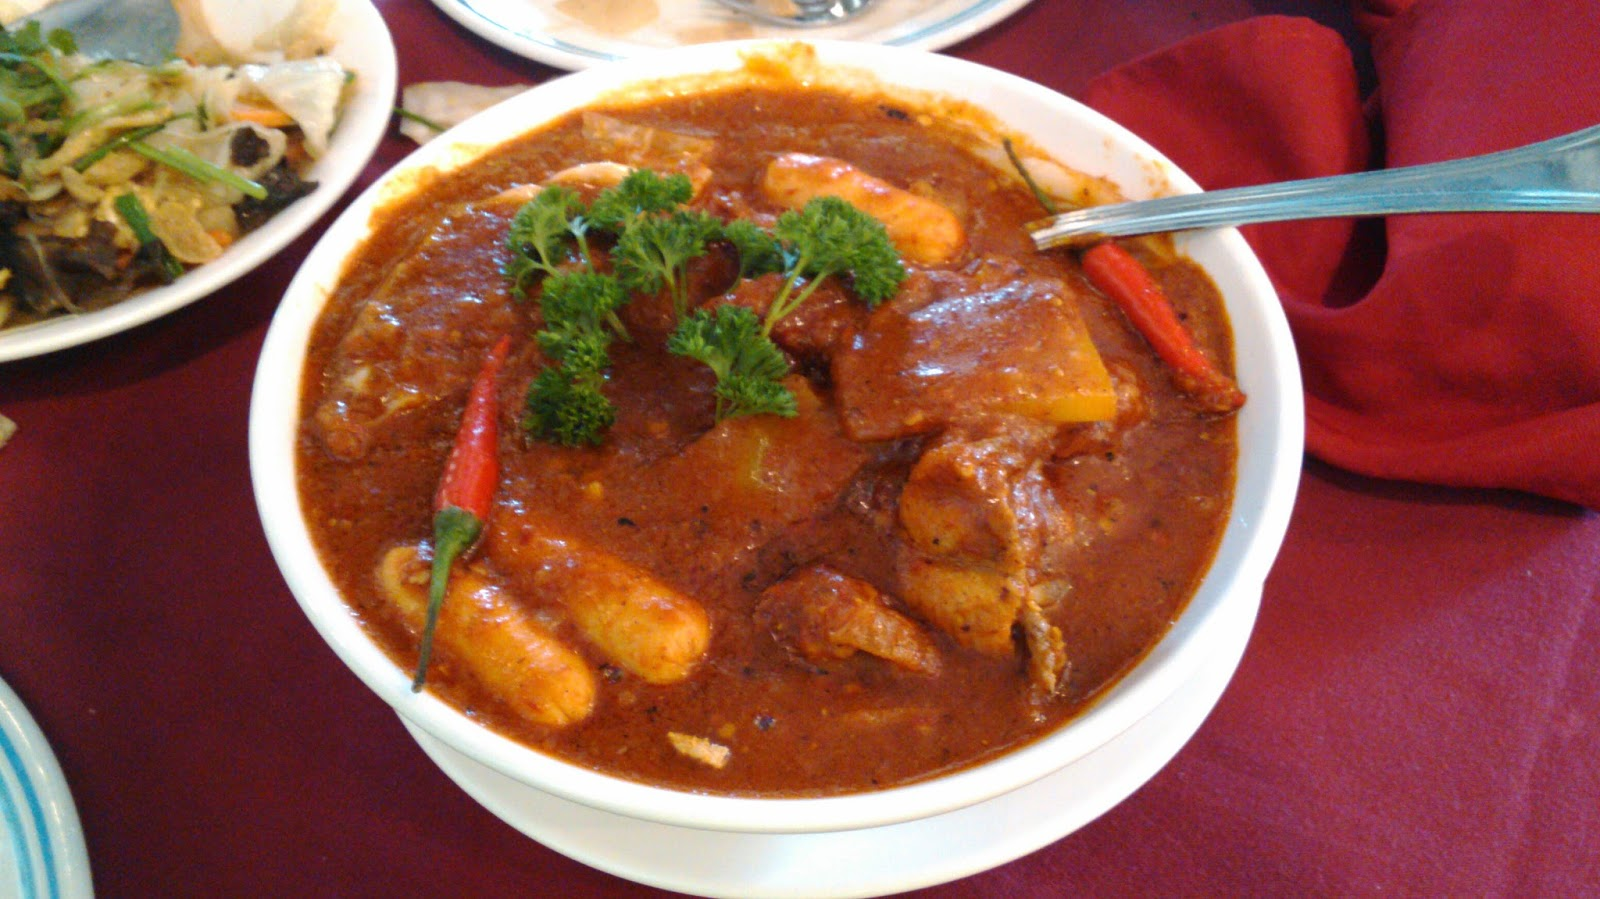 Food blog eurasian food culture chicken vindaloo is one of eurasians dishes sugee cake is one of eurasian desserts recipes devils curry forumfinder Choice Image